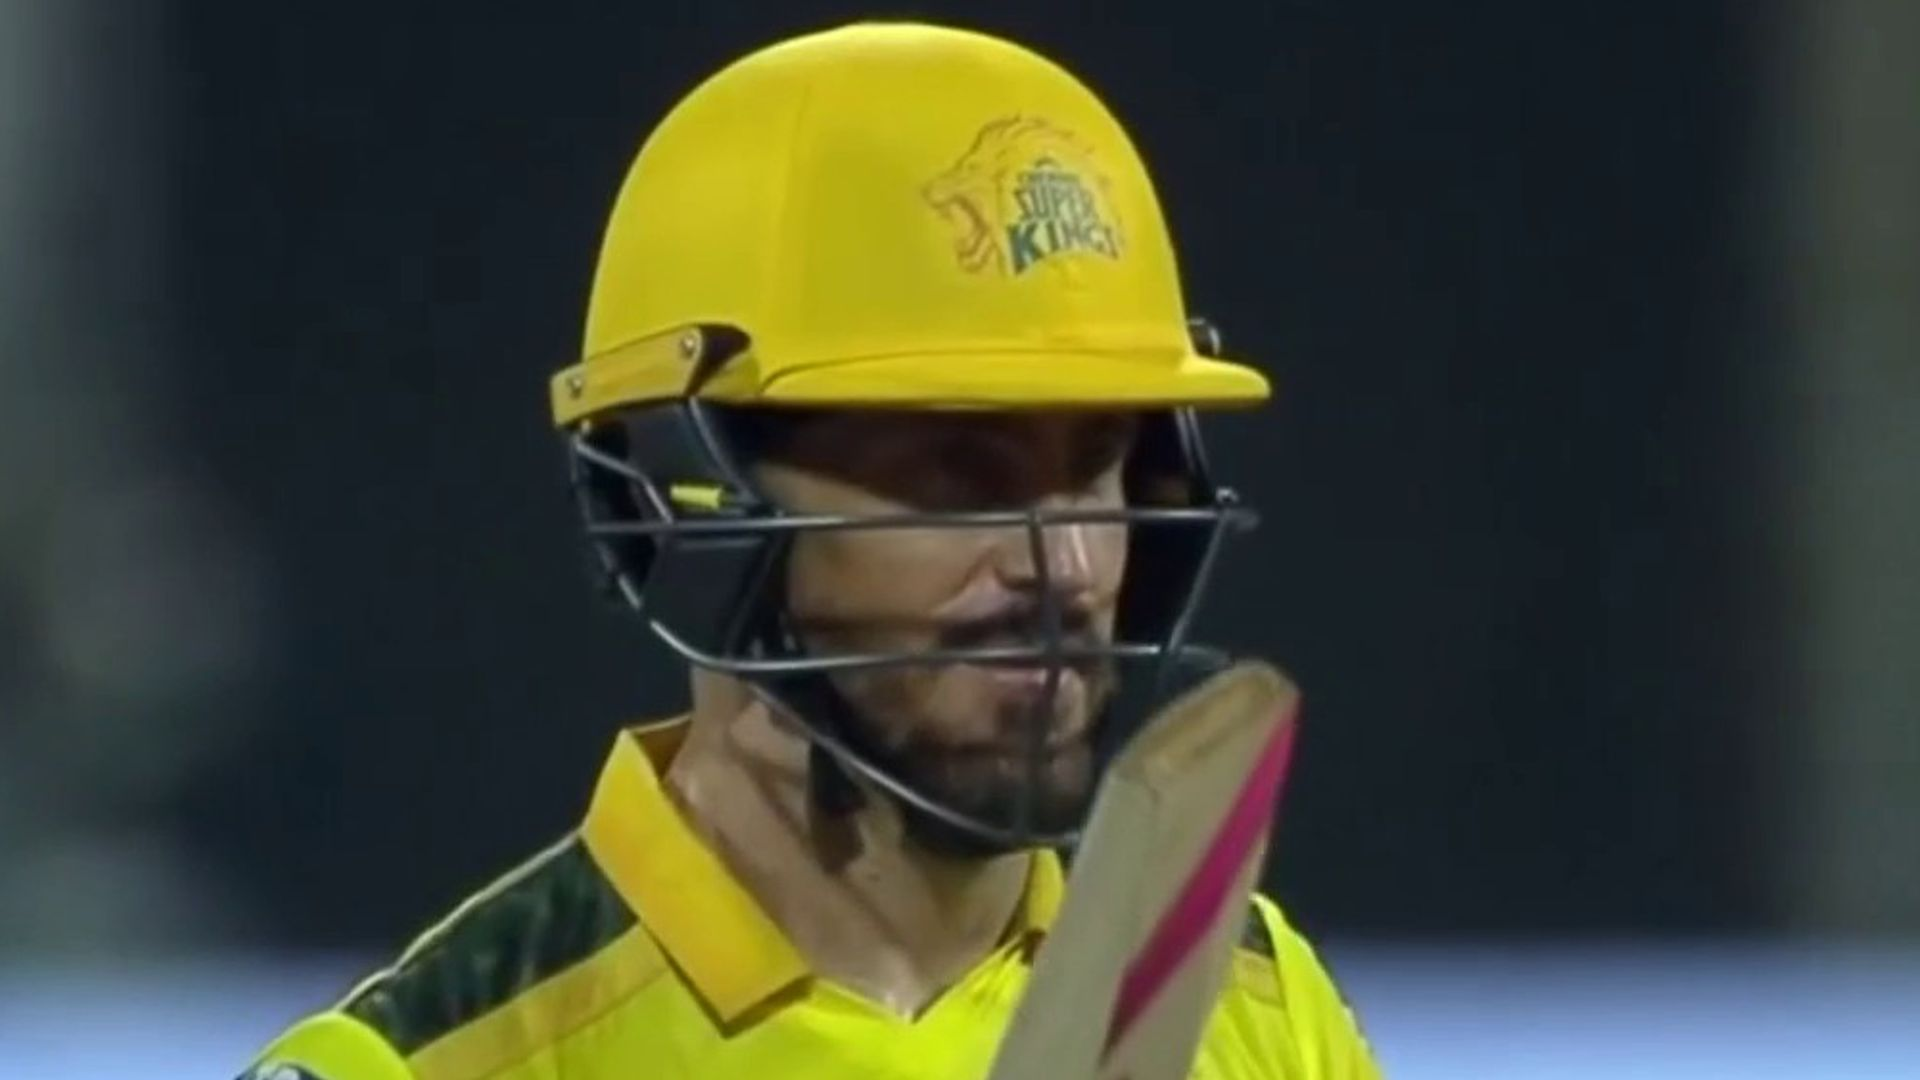 Chennai clinch thriller after Kolkata blitz - sky sports